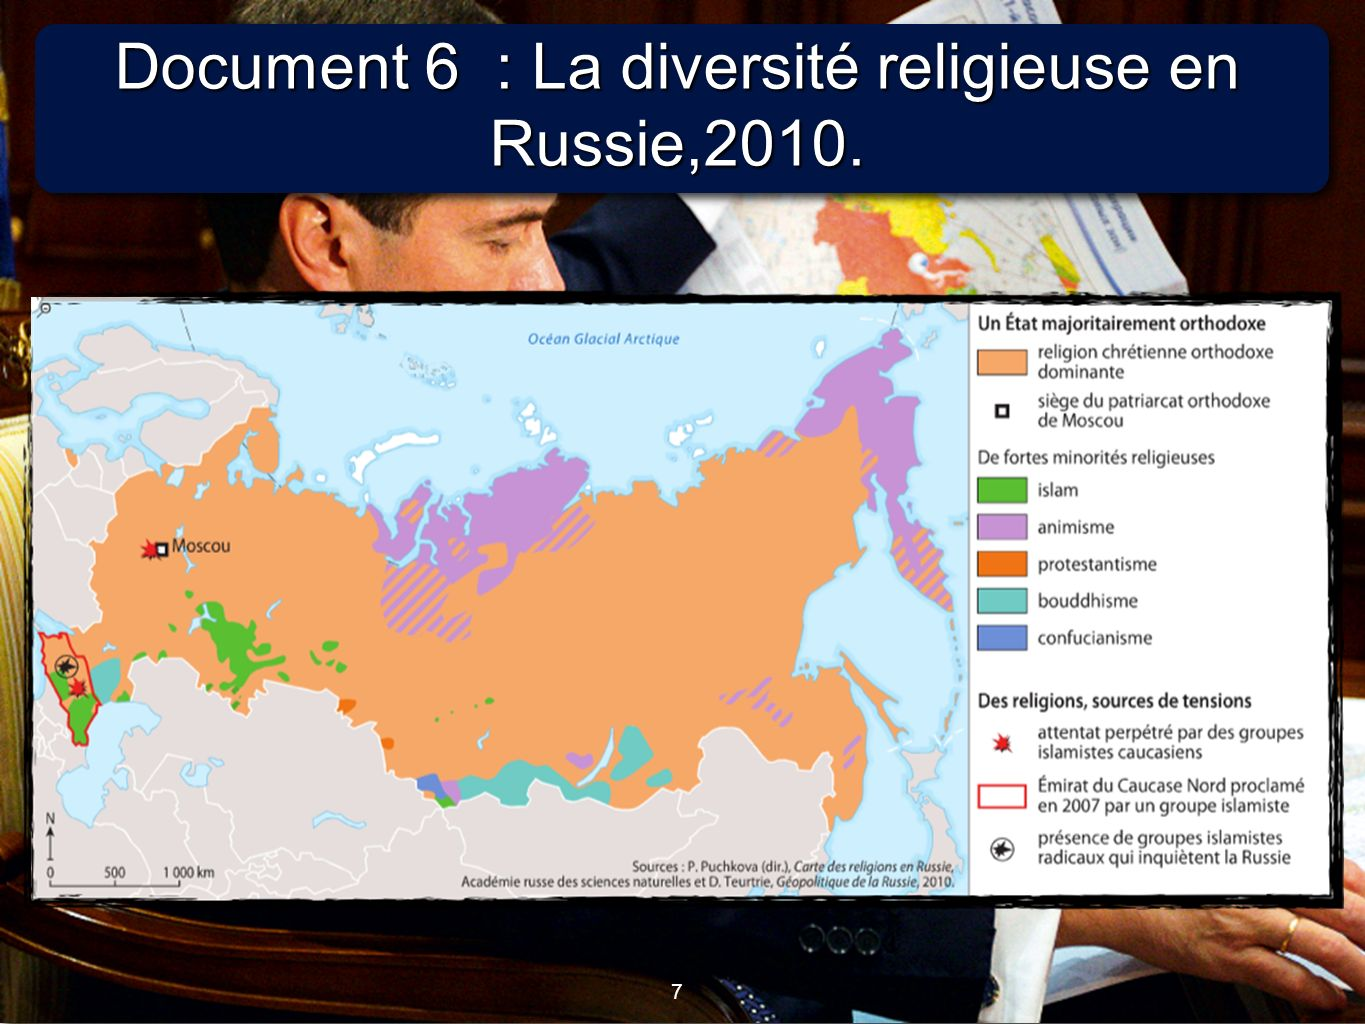 Document 6 : La diversité religieuse en Russie,2010.